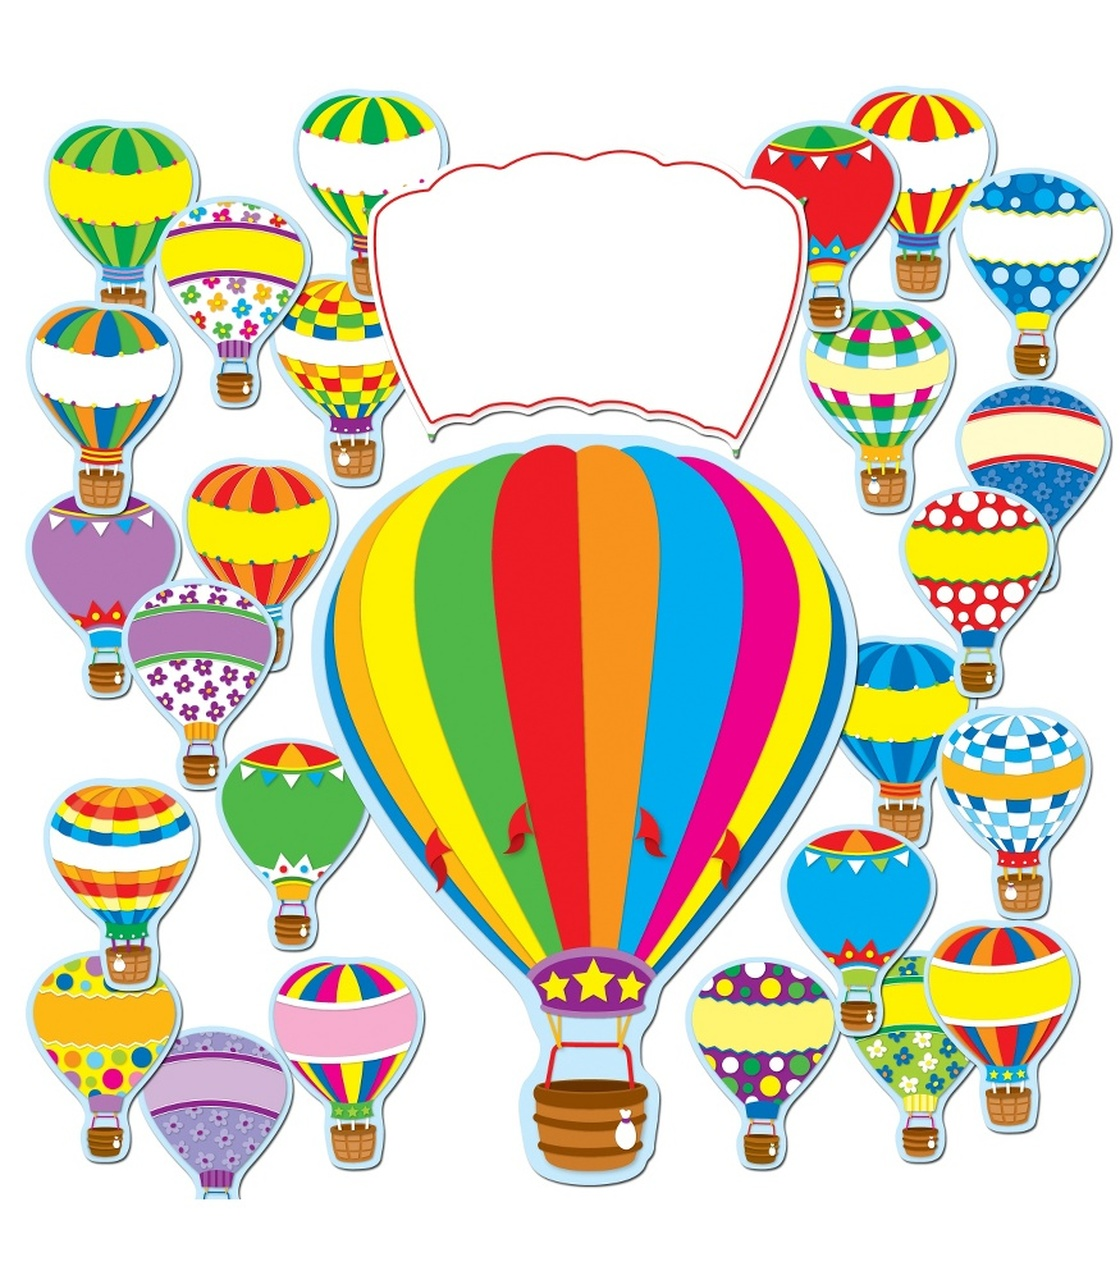 Soar to serve hot air balloon clipart jpg free library Hot Air Balloons Bulletin Board Set jpg free library